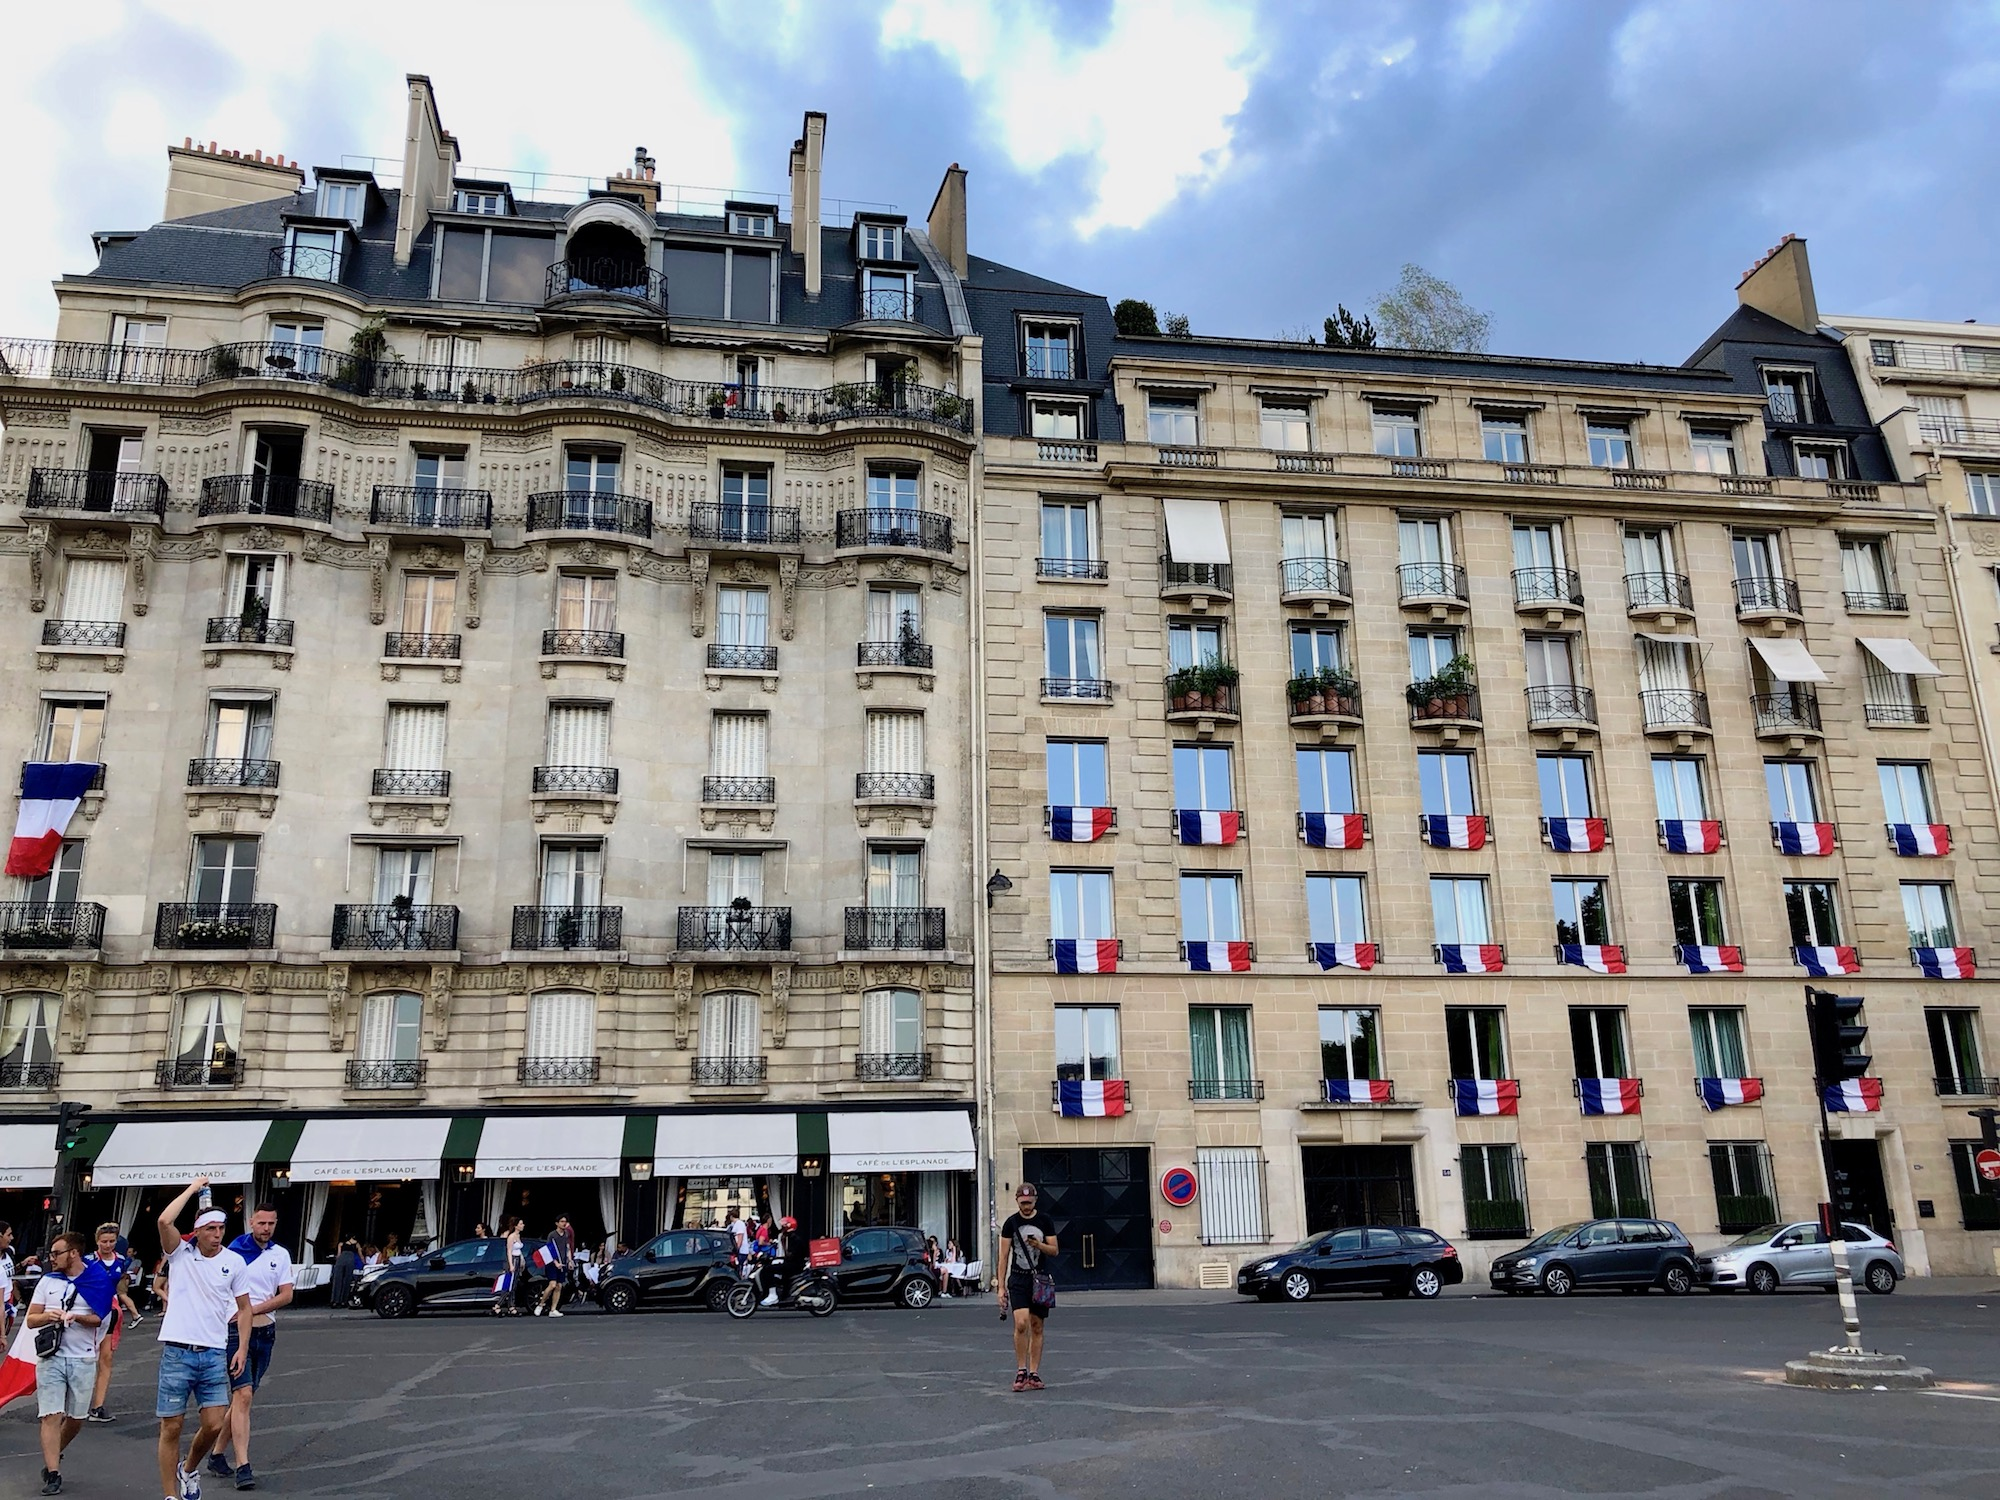 When France won the football world cup in 2018, French flags were flown everywhere, even from windows of buildings all over Paris.